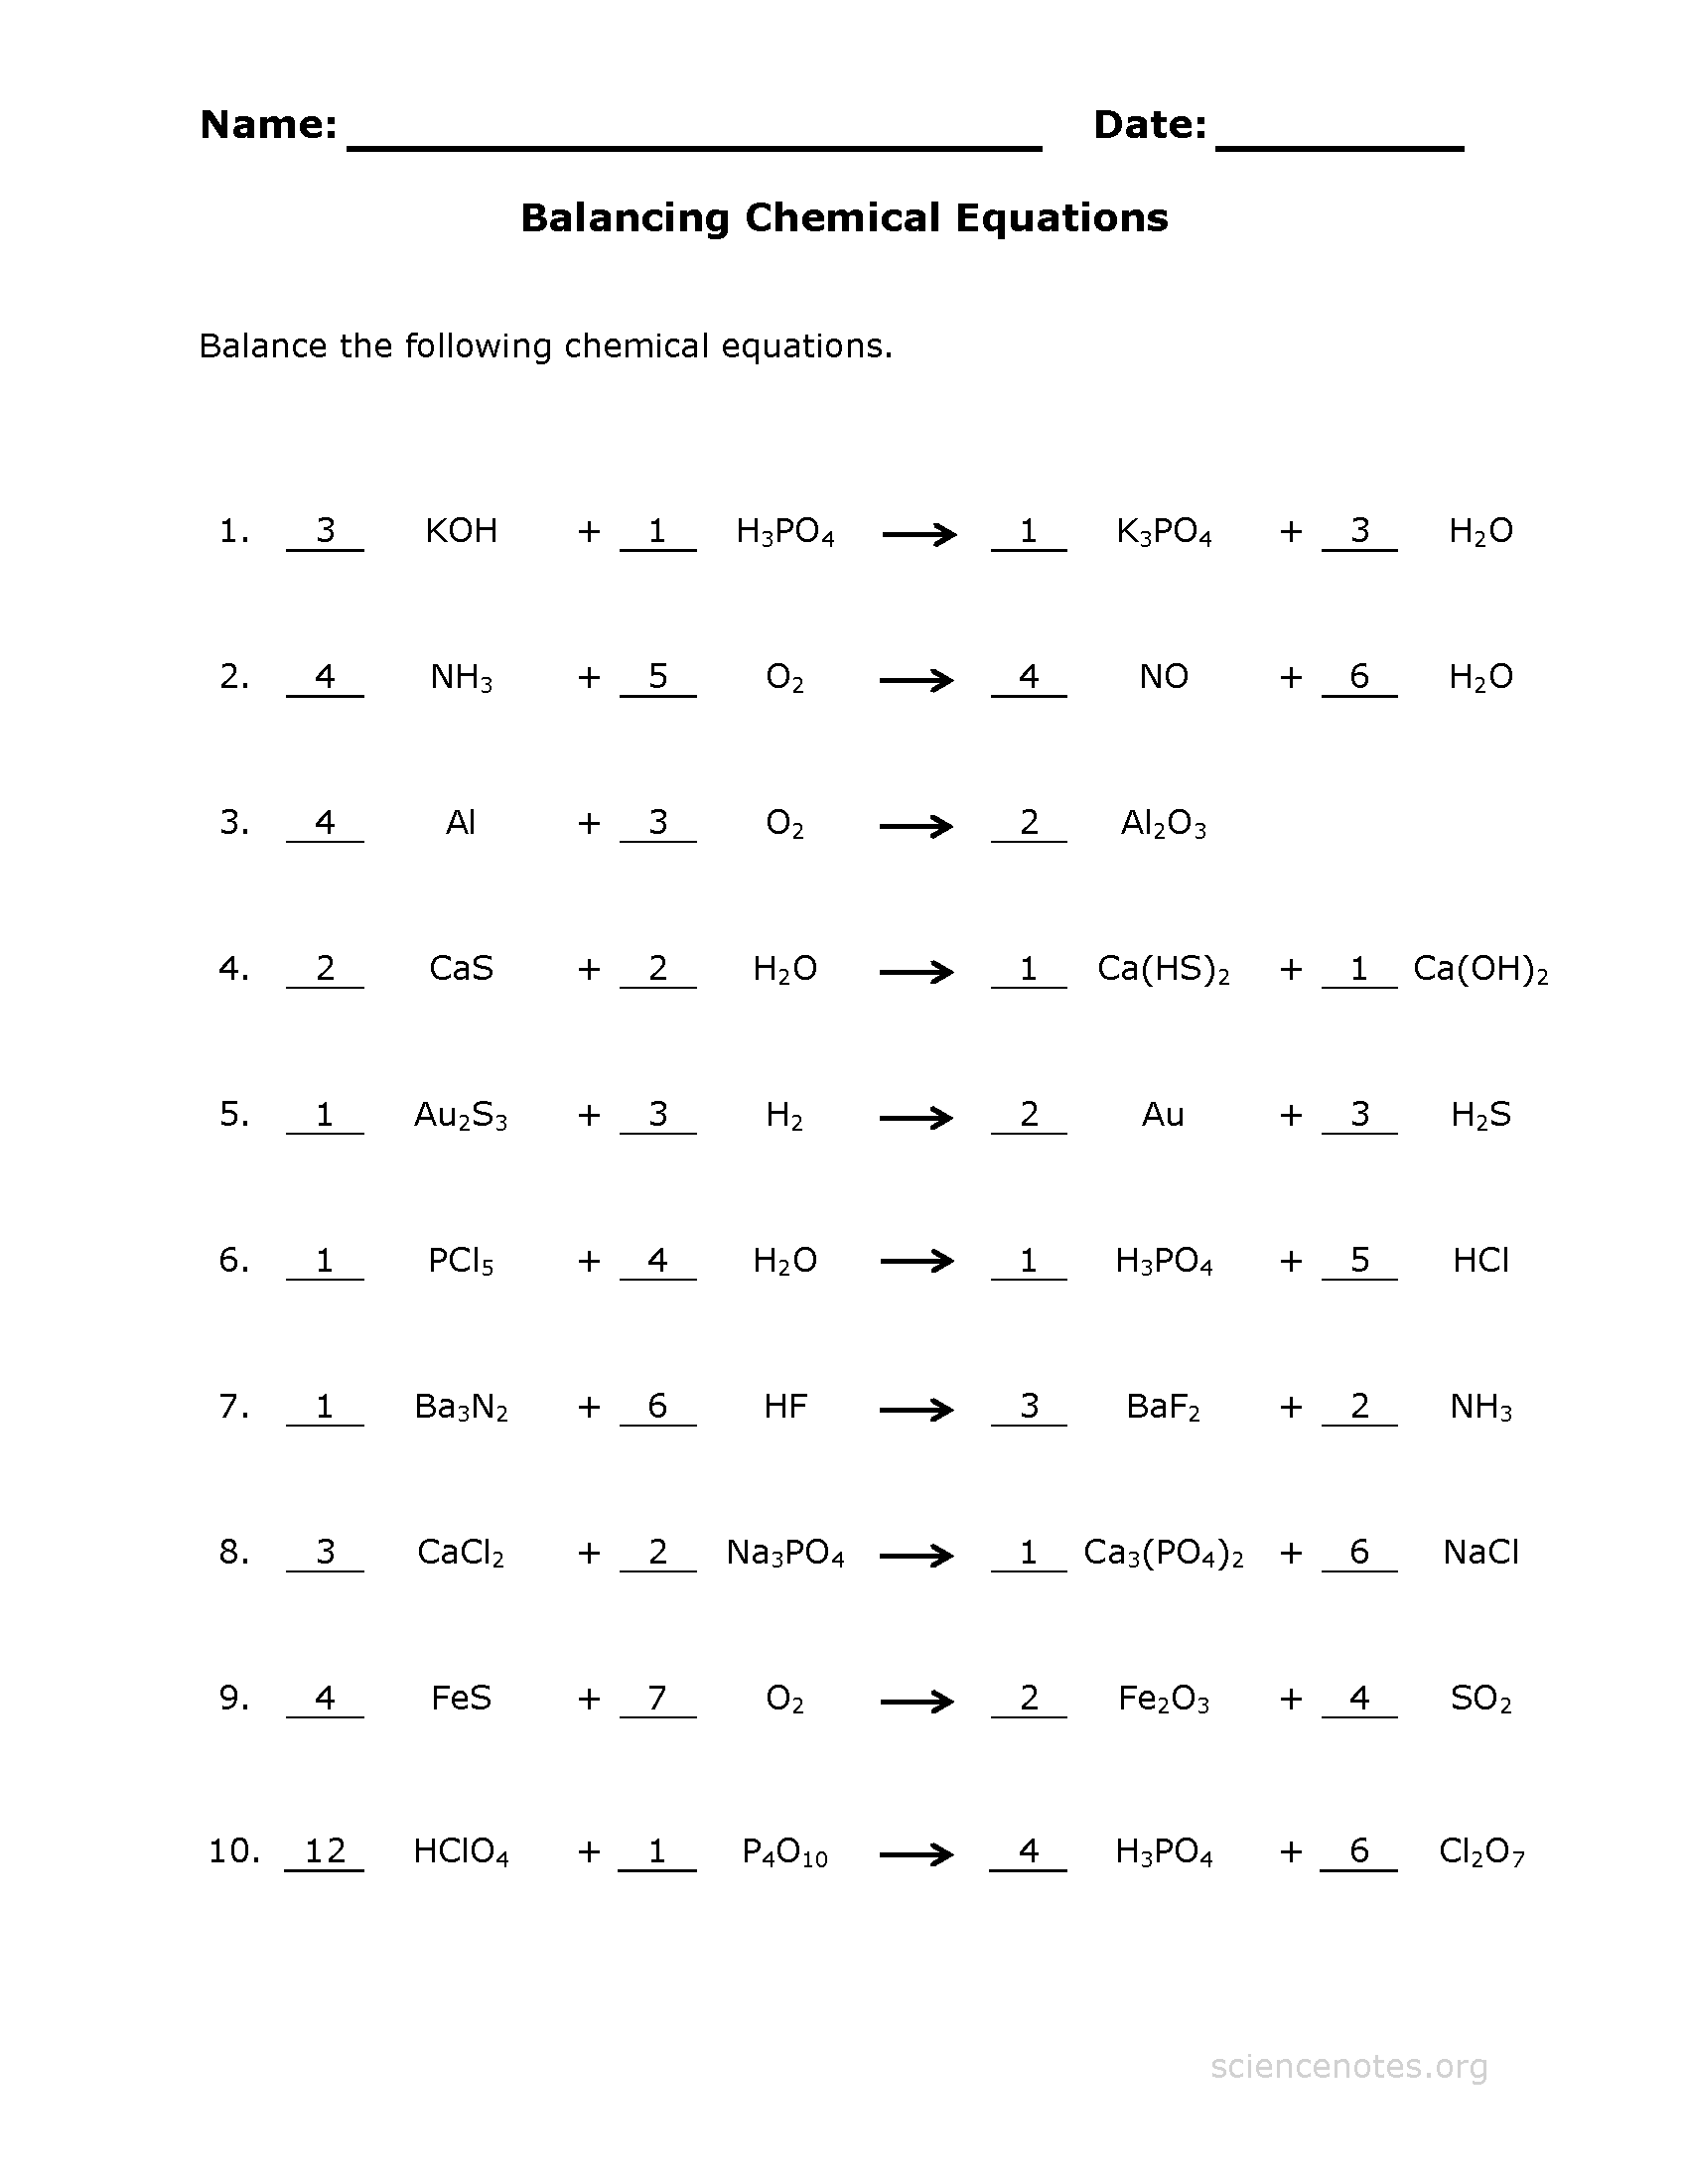 to see the completed sheet check out our other balancing chemical equation worksheets - Balancing Chemical Equations Worksheet Answer Key